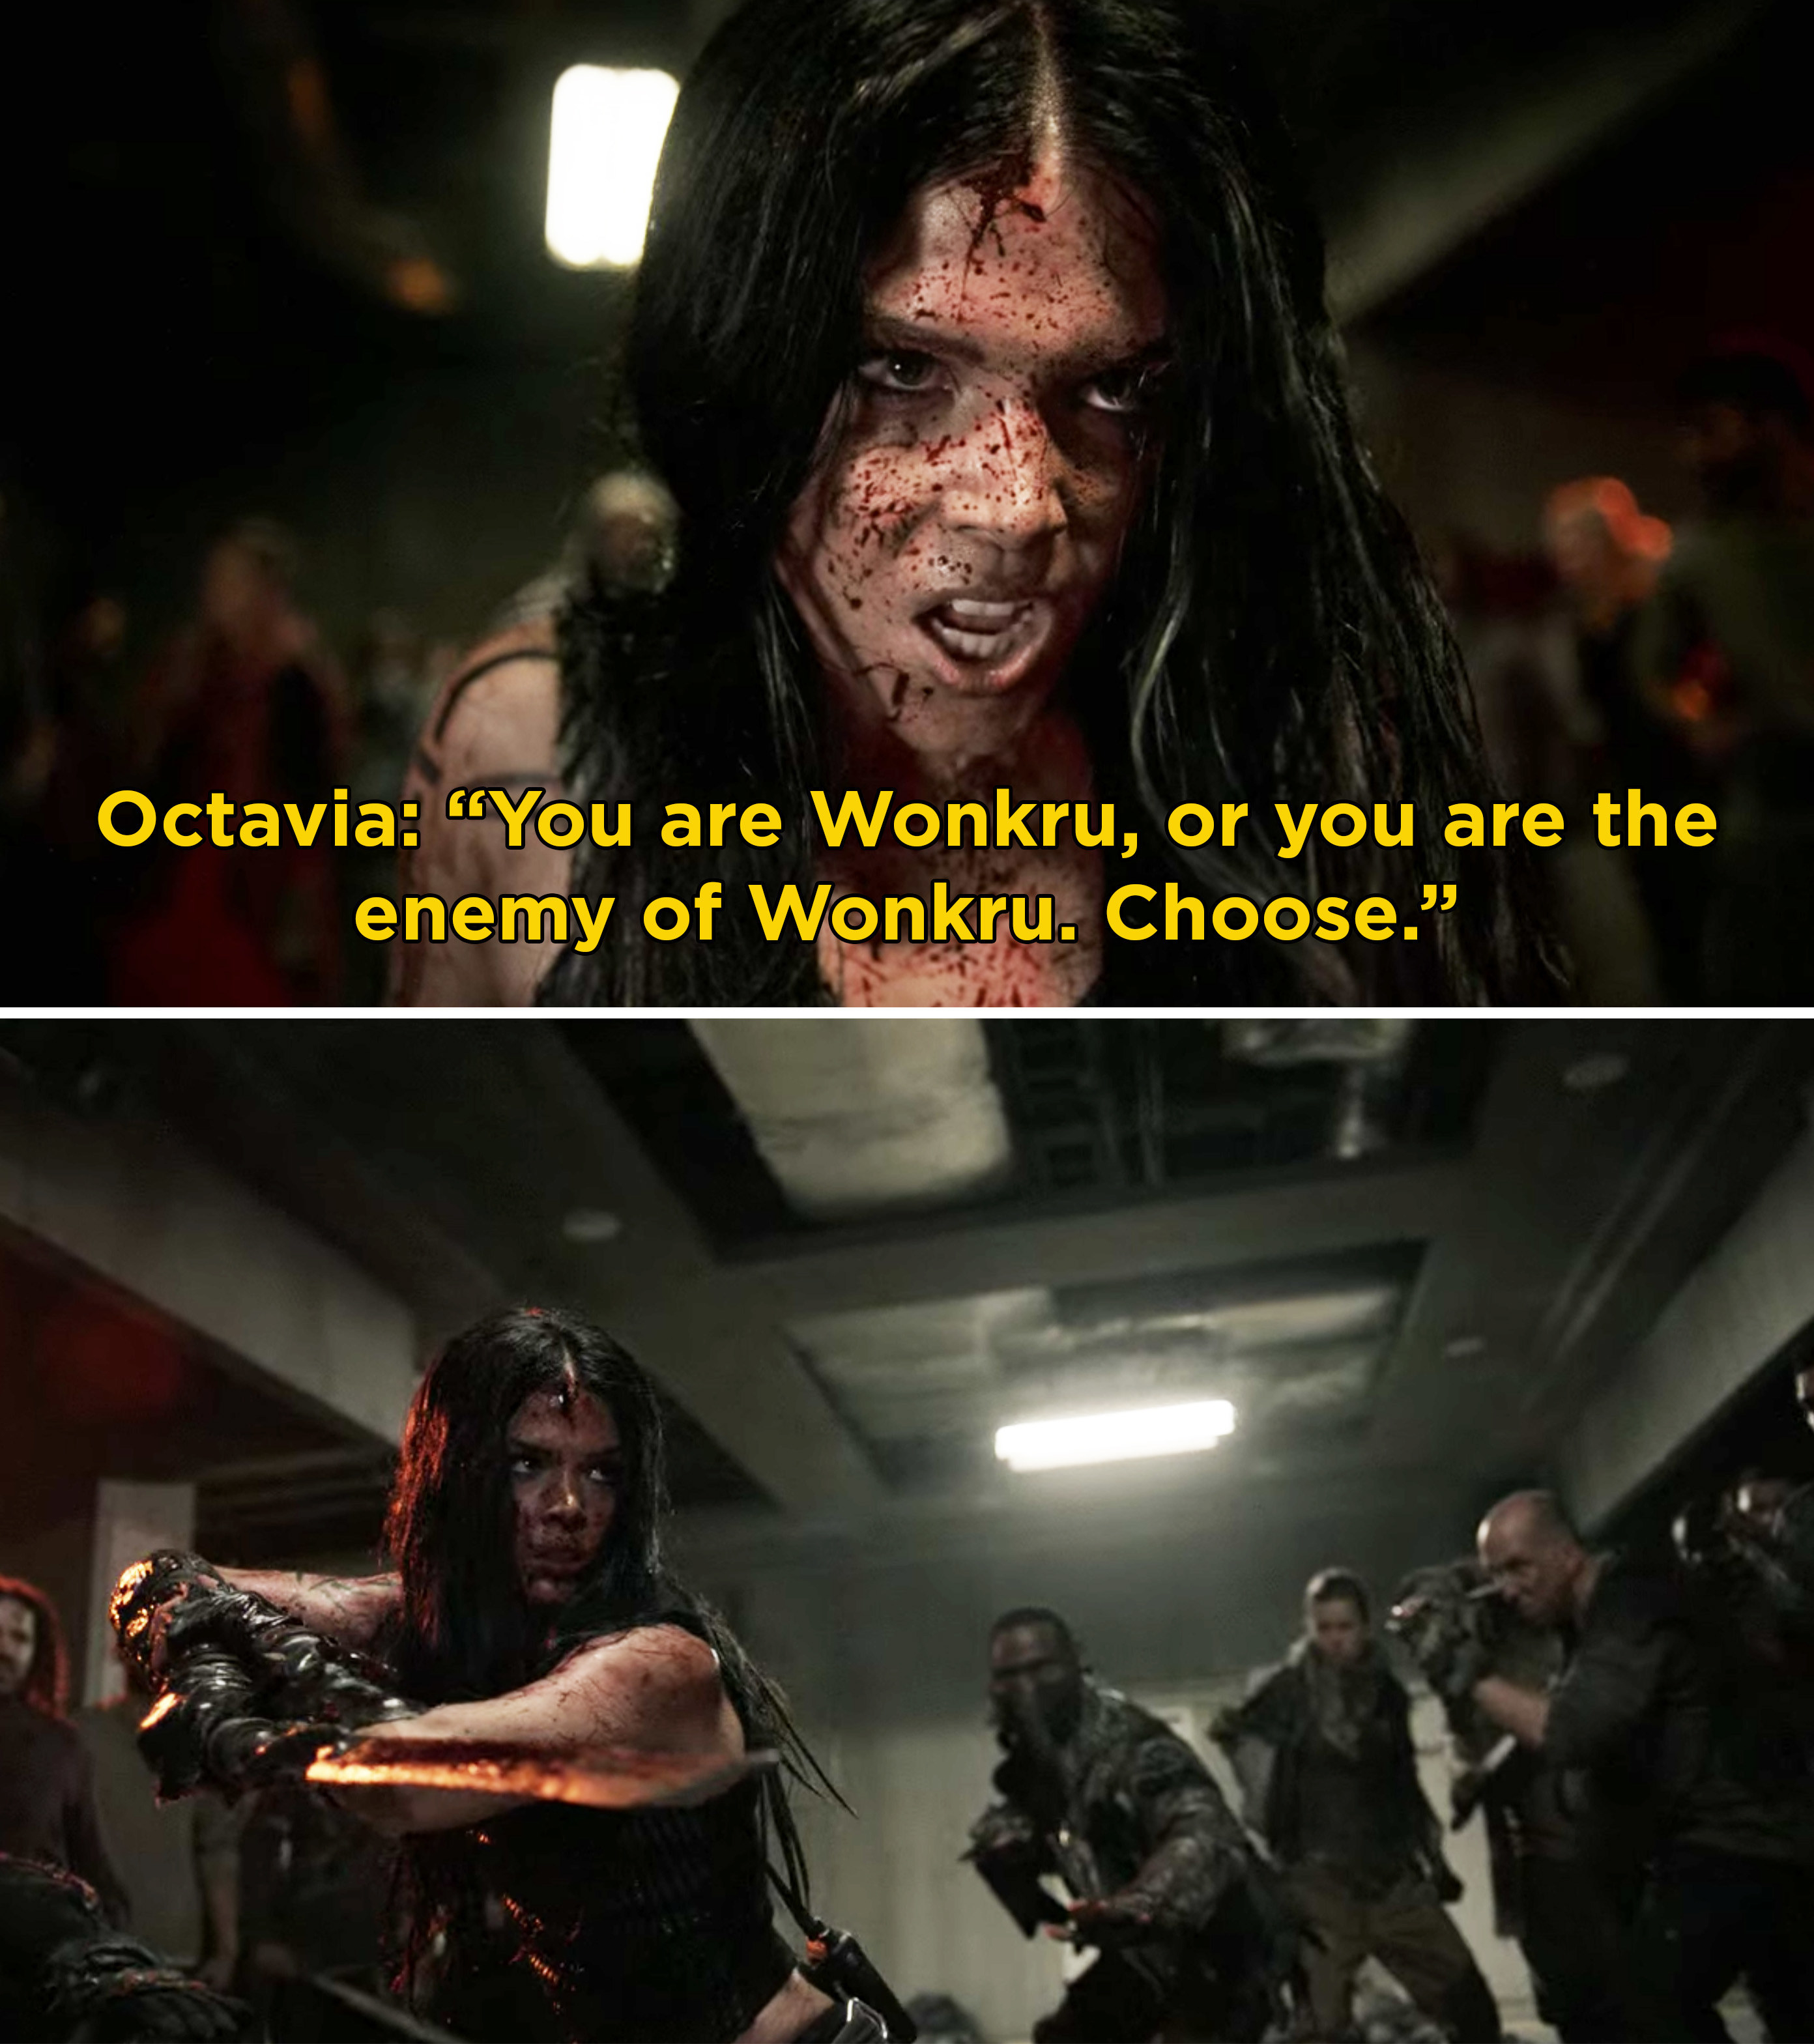 """Octavia covered in blood during a battle saying, """"You are Wonkru, or you are the enemy of Wonkru. Choose"""""""